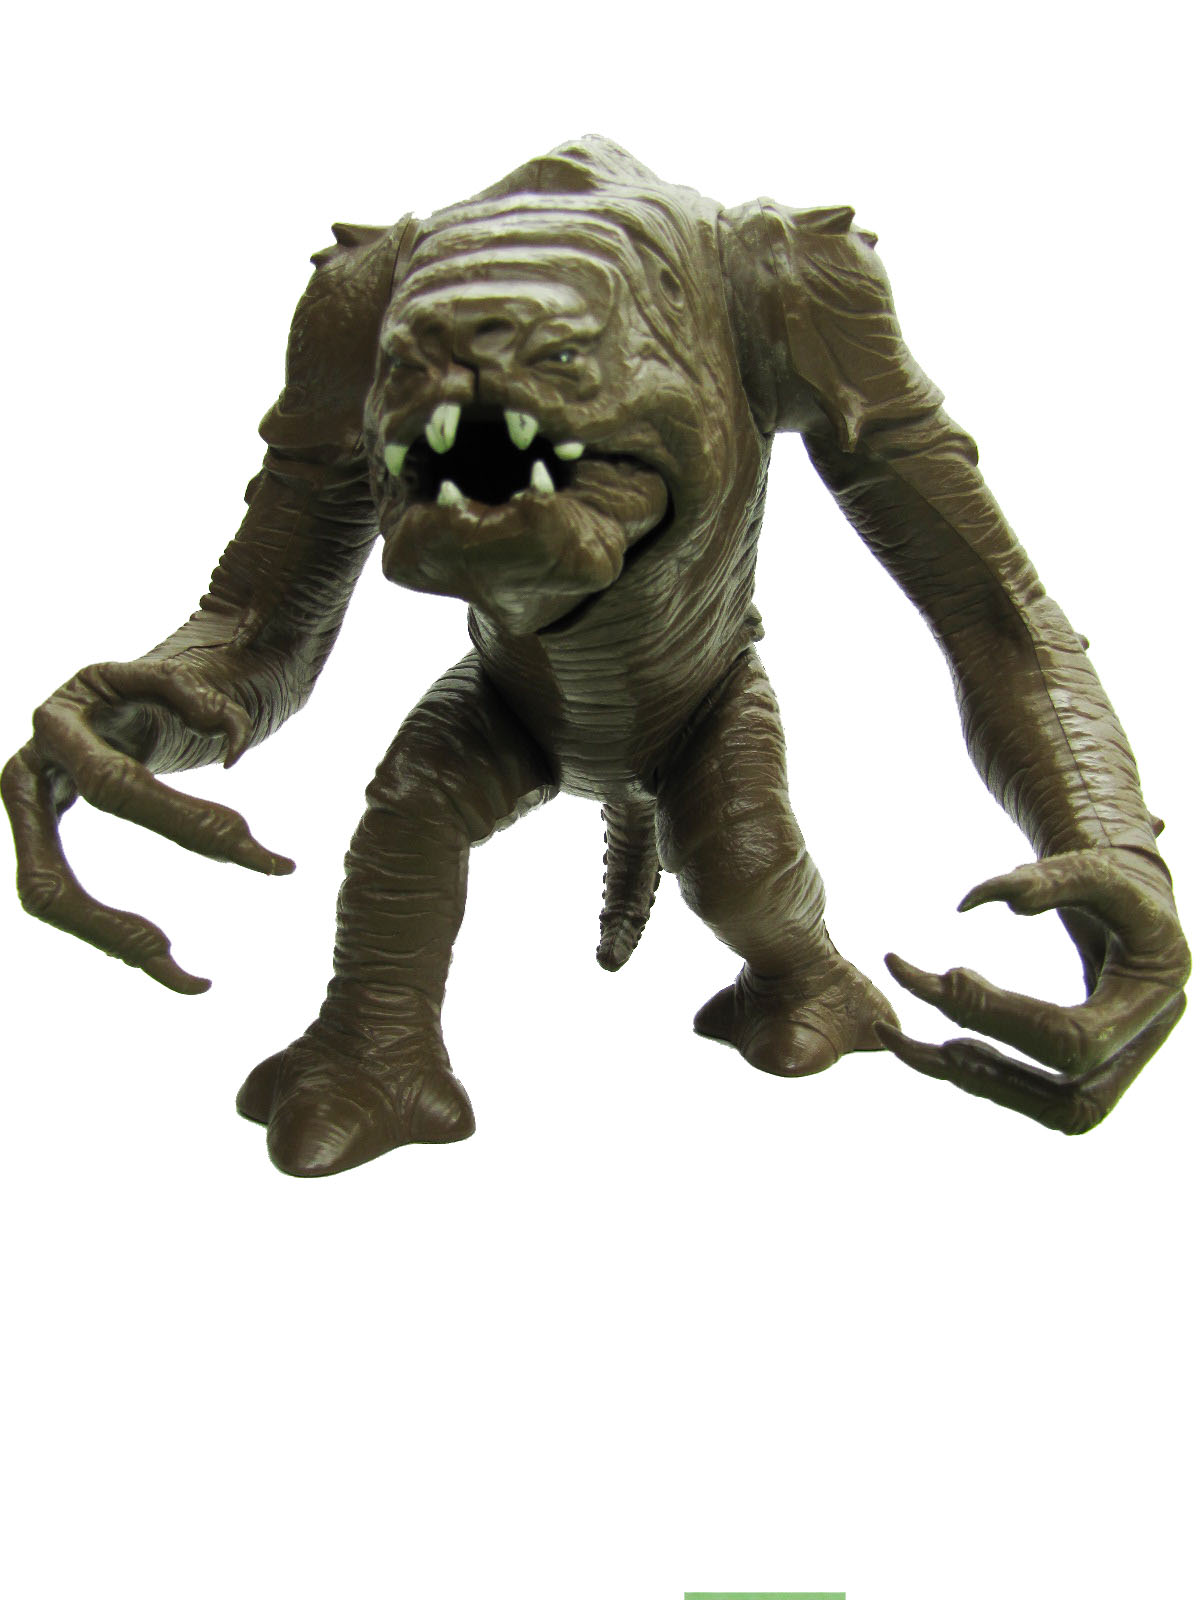 1984 Star Wars RANCOR MONSTER Complete